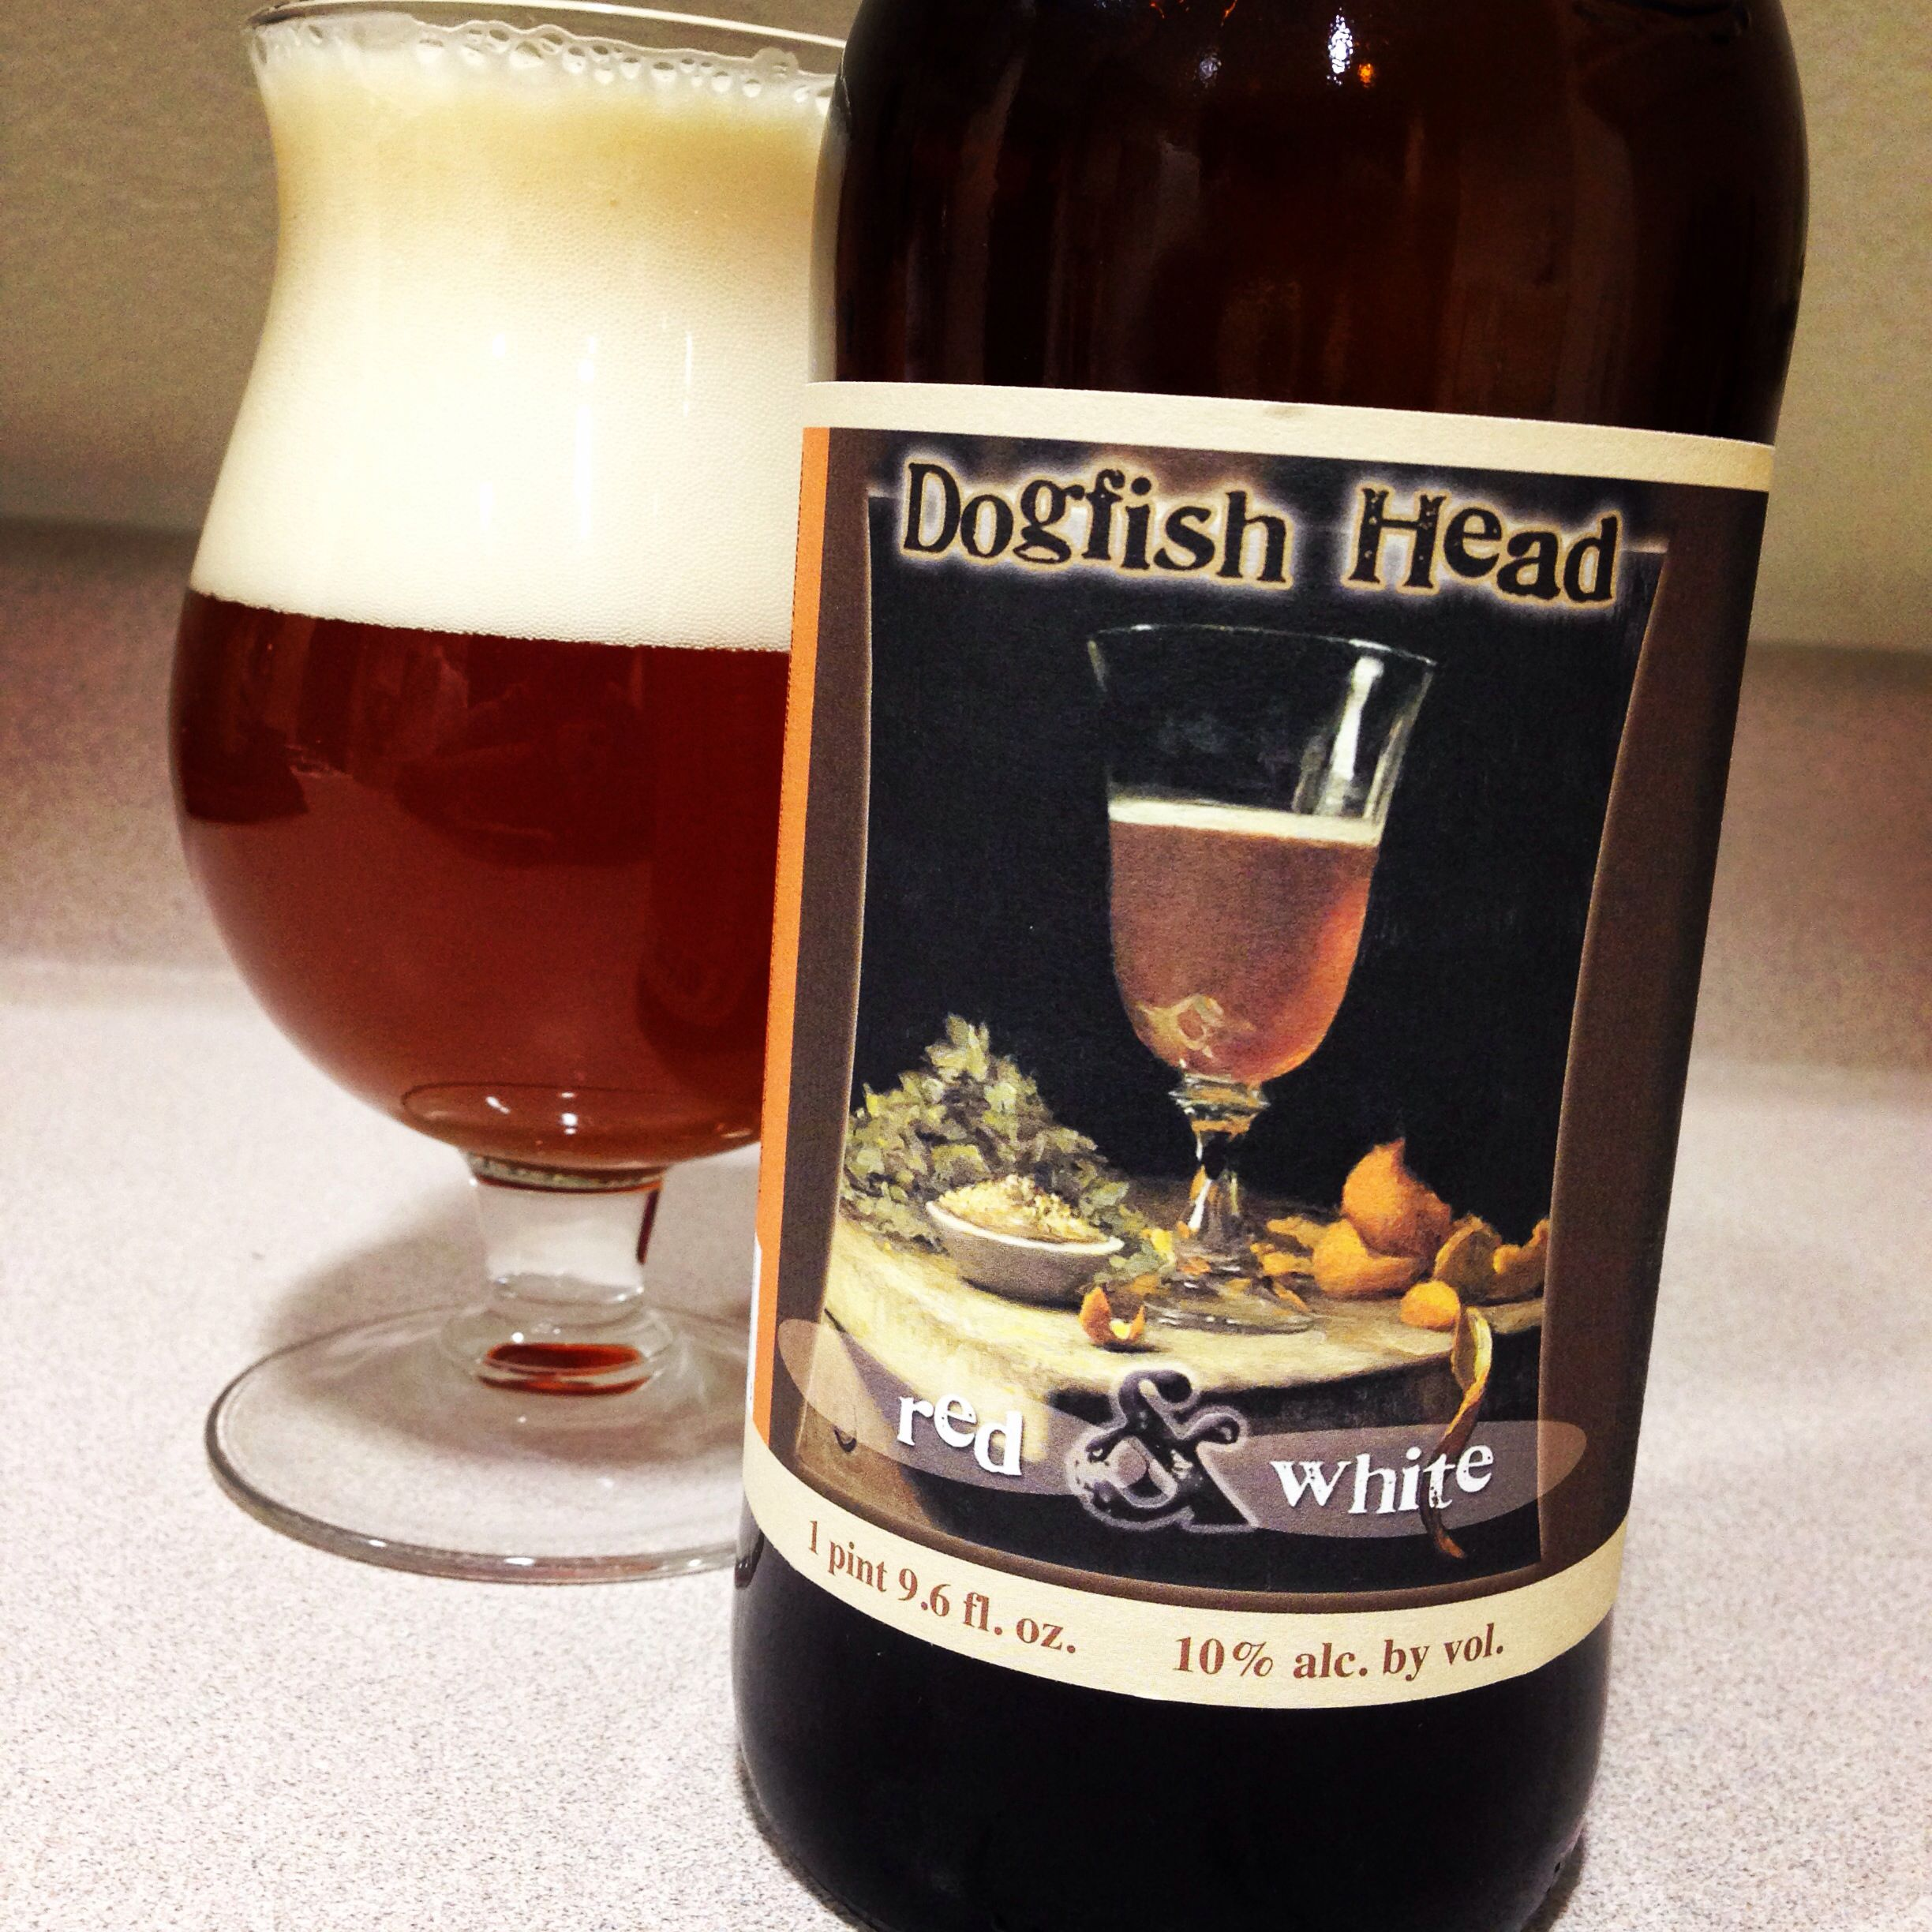 Dogfish Head Red White Wine Bottle Red And White Craft Beer